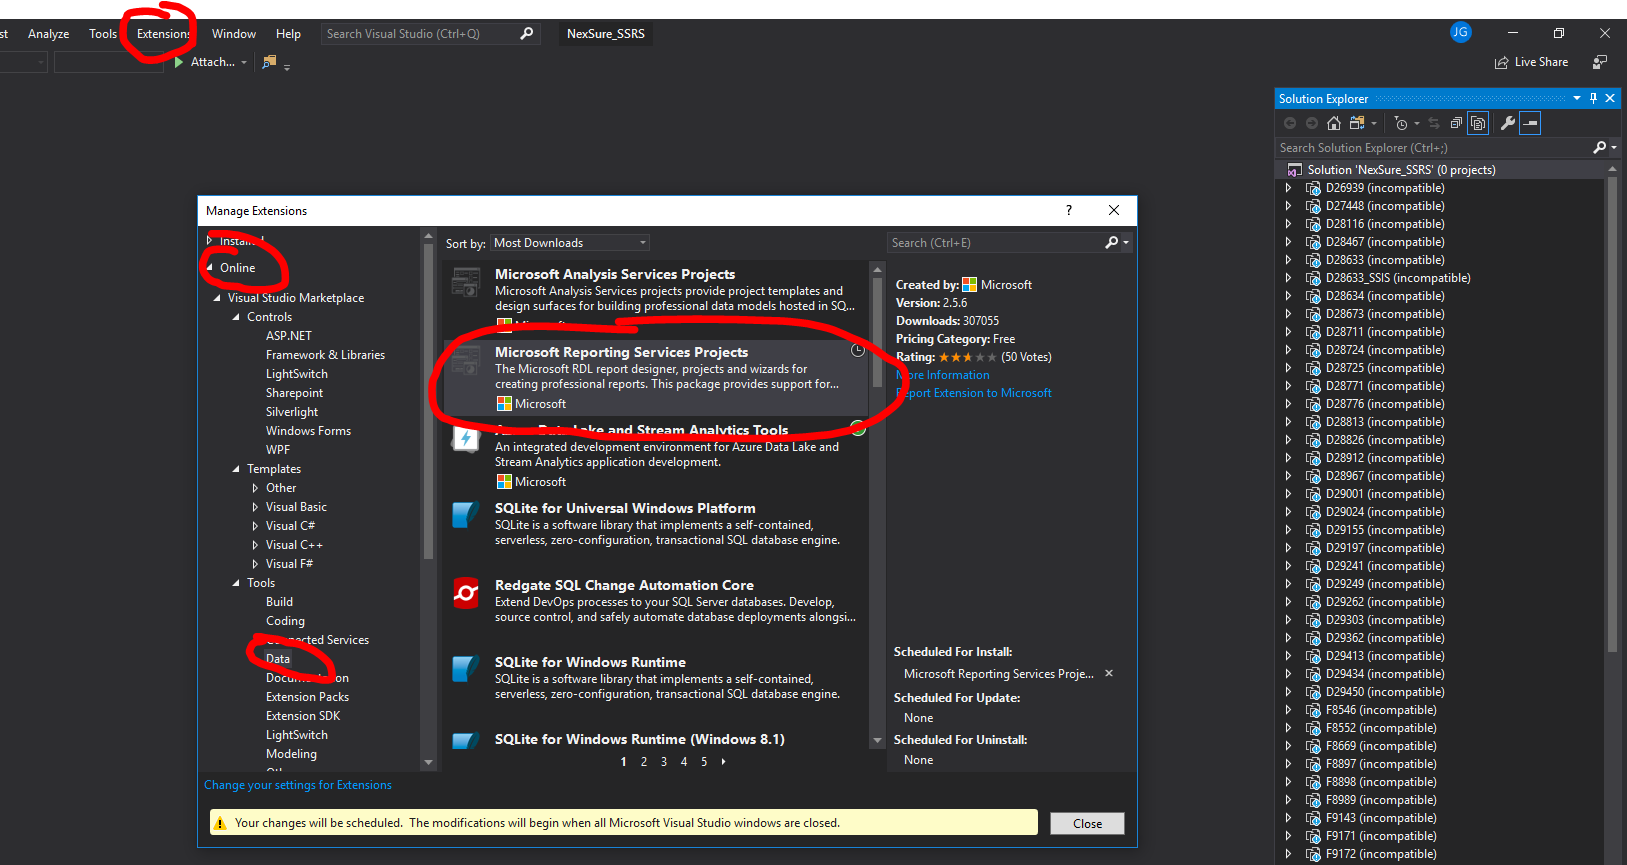 SSDT tools for Visual Studio 2019 are not available · Issue